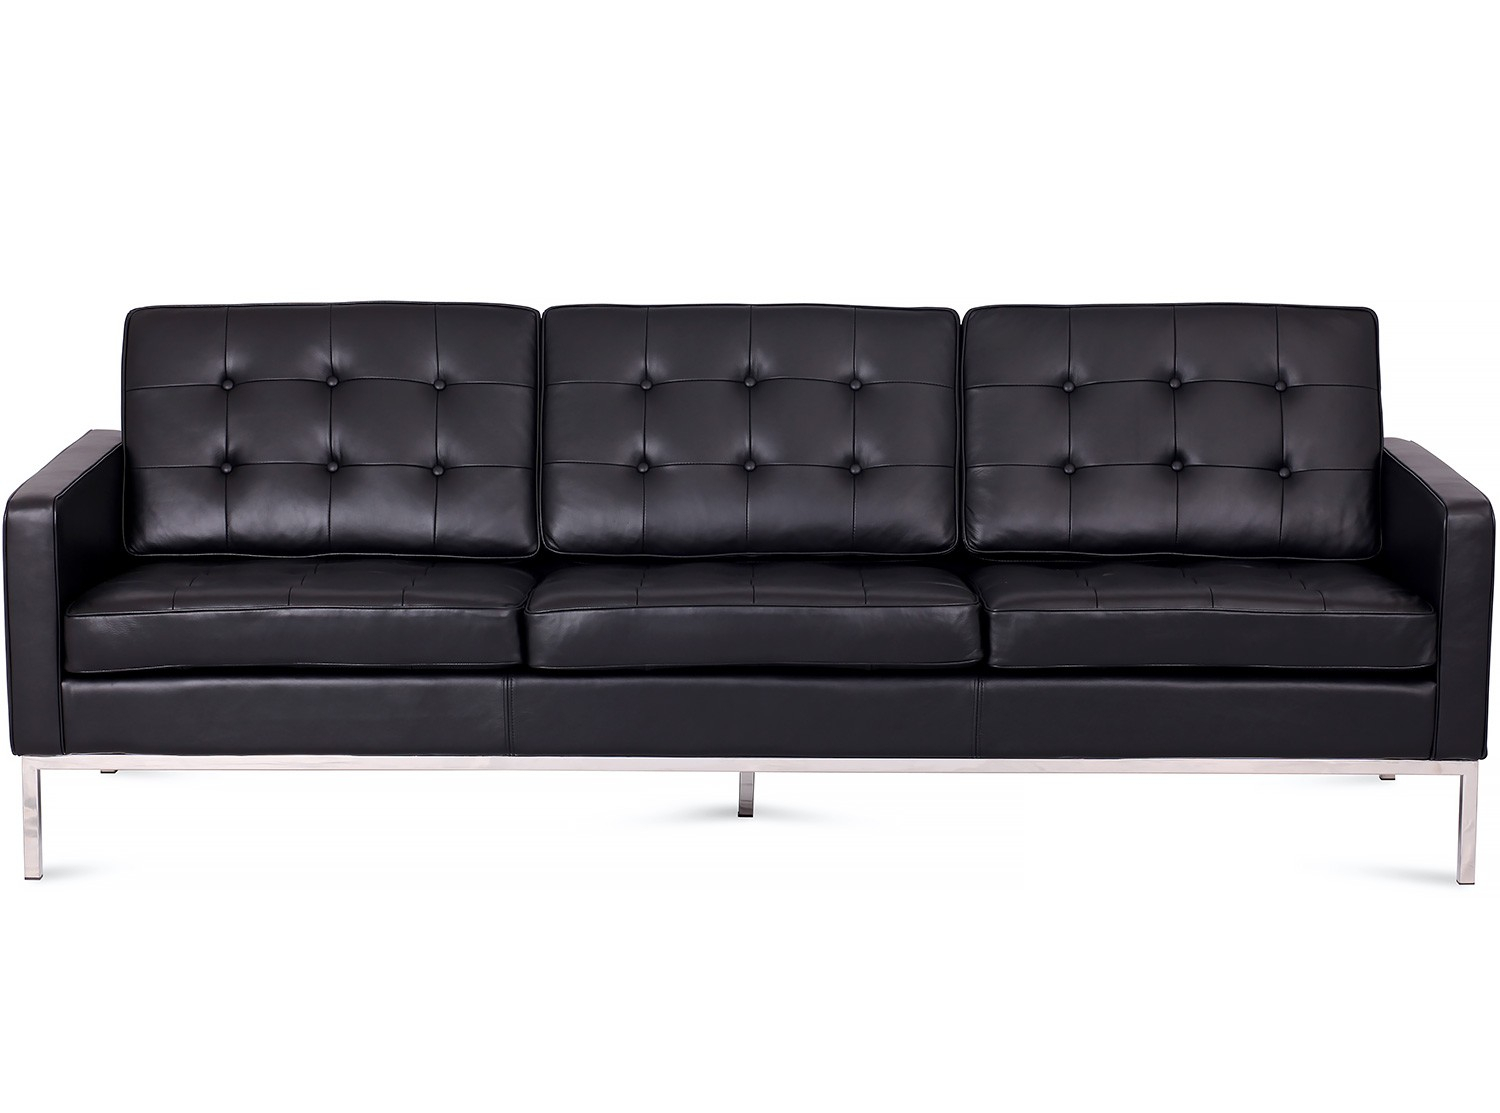 Florence Knoll Sofa 3 Seater Leather (Platinum Replica) Pertaining To Florence Leather Sofas (View 12 of 15)